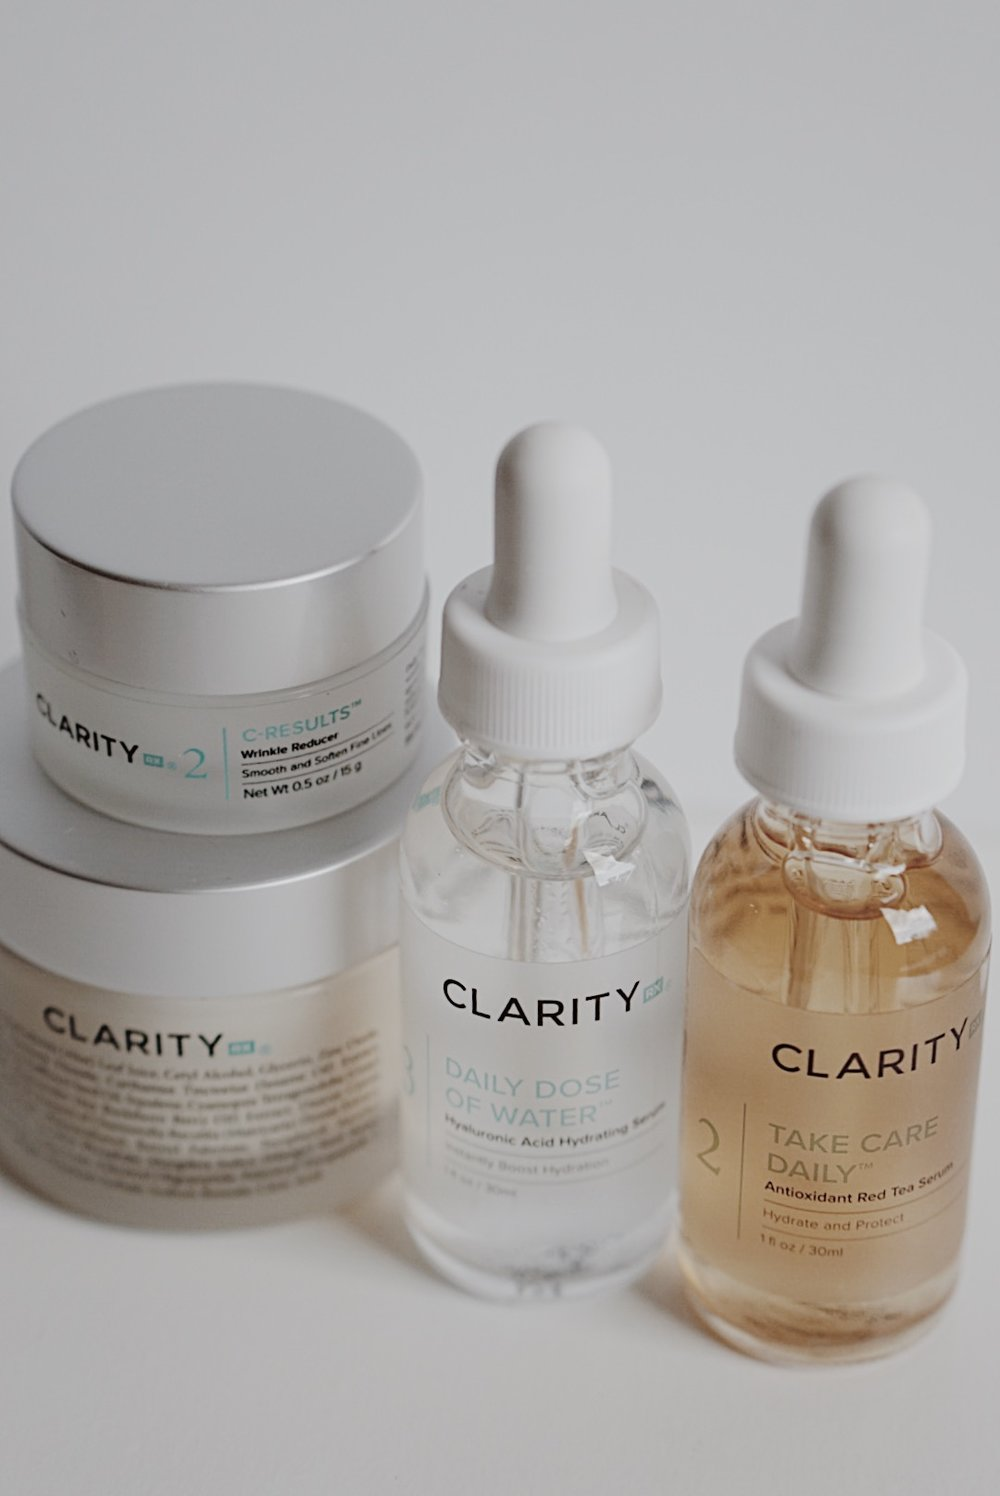 ClarityRX Daily Dose of Water, Take Care Daily Antioxidant Red Tea Serum, C-Results Wrinkle Reducer, Daily Fruit Antioxidant Moisturizing Mango Mask